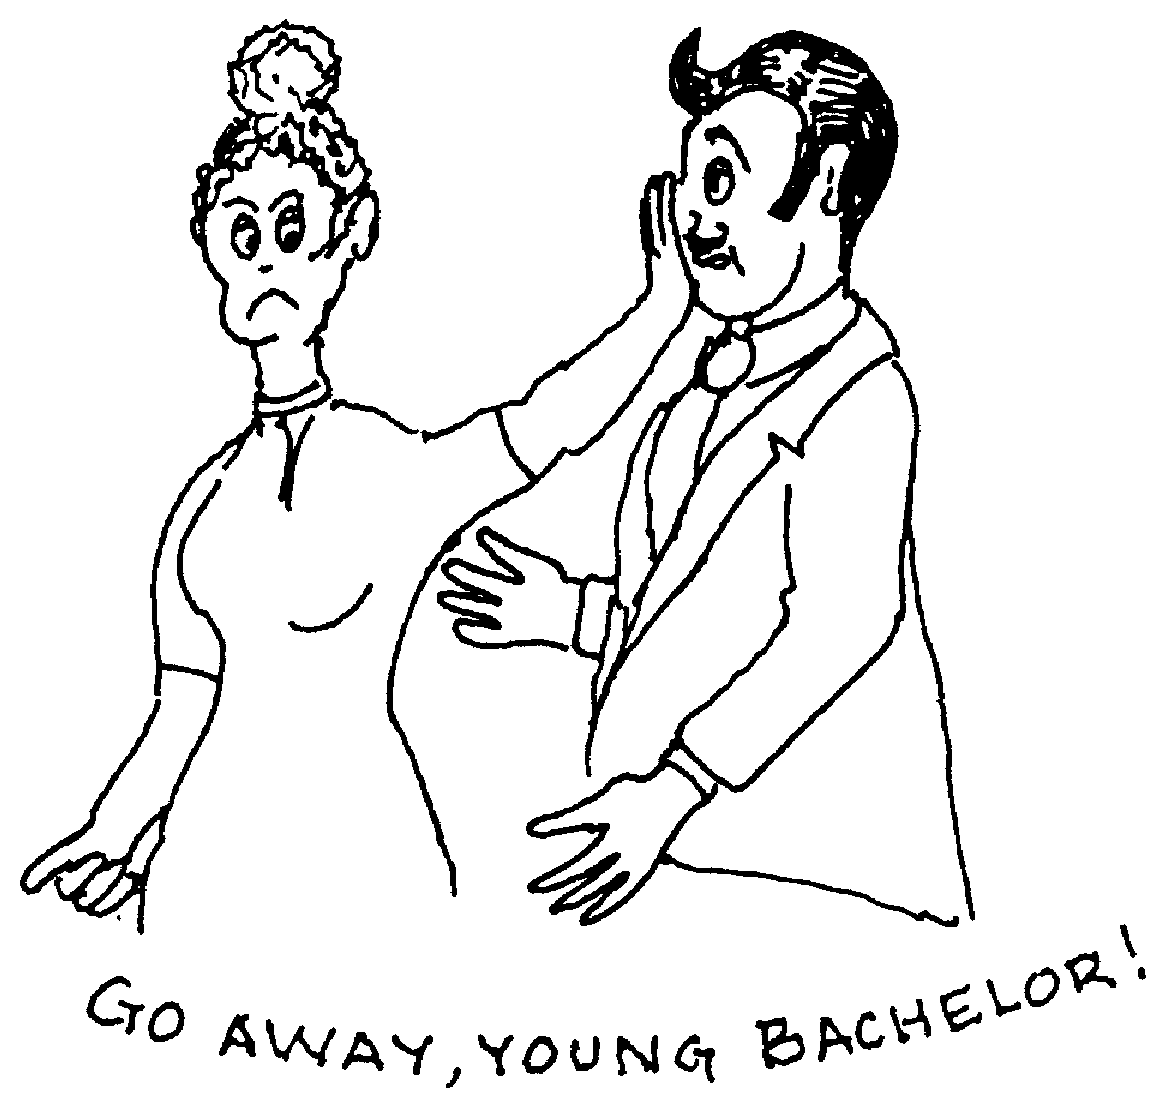 Sketch of Go away, young bachelor!